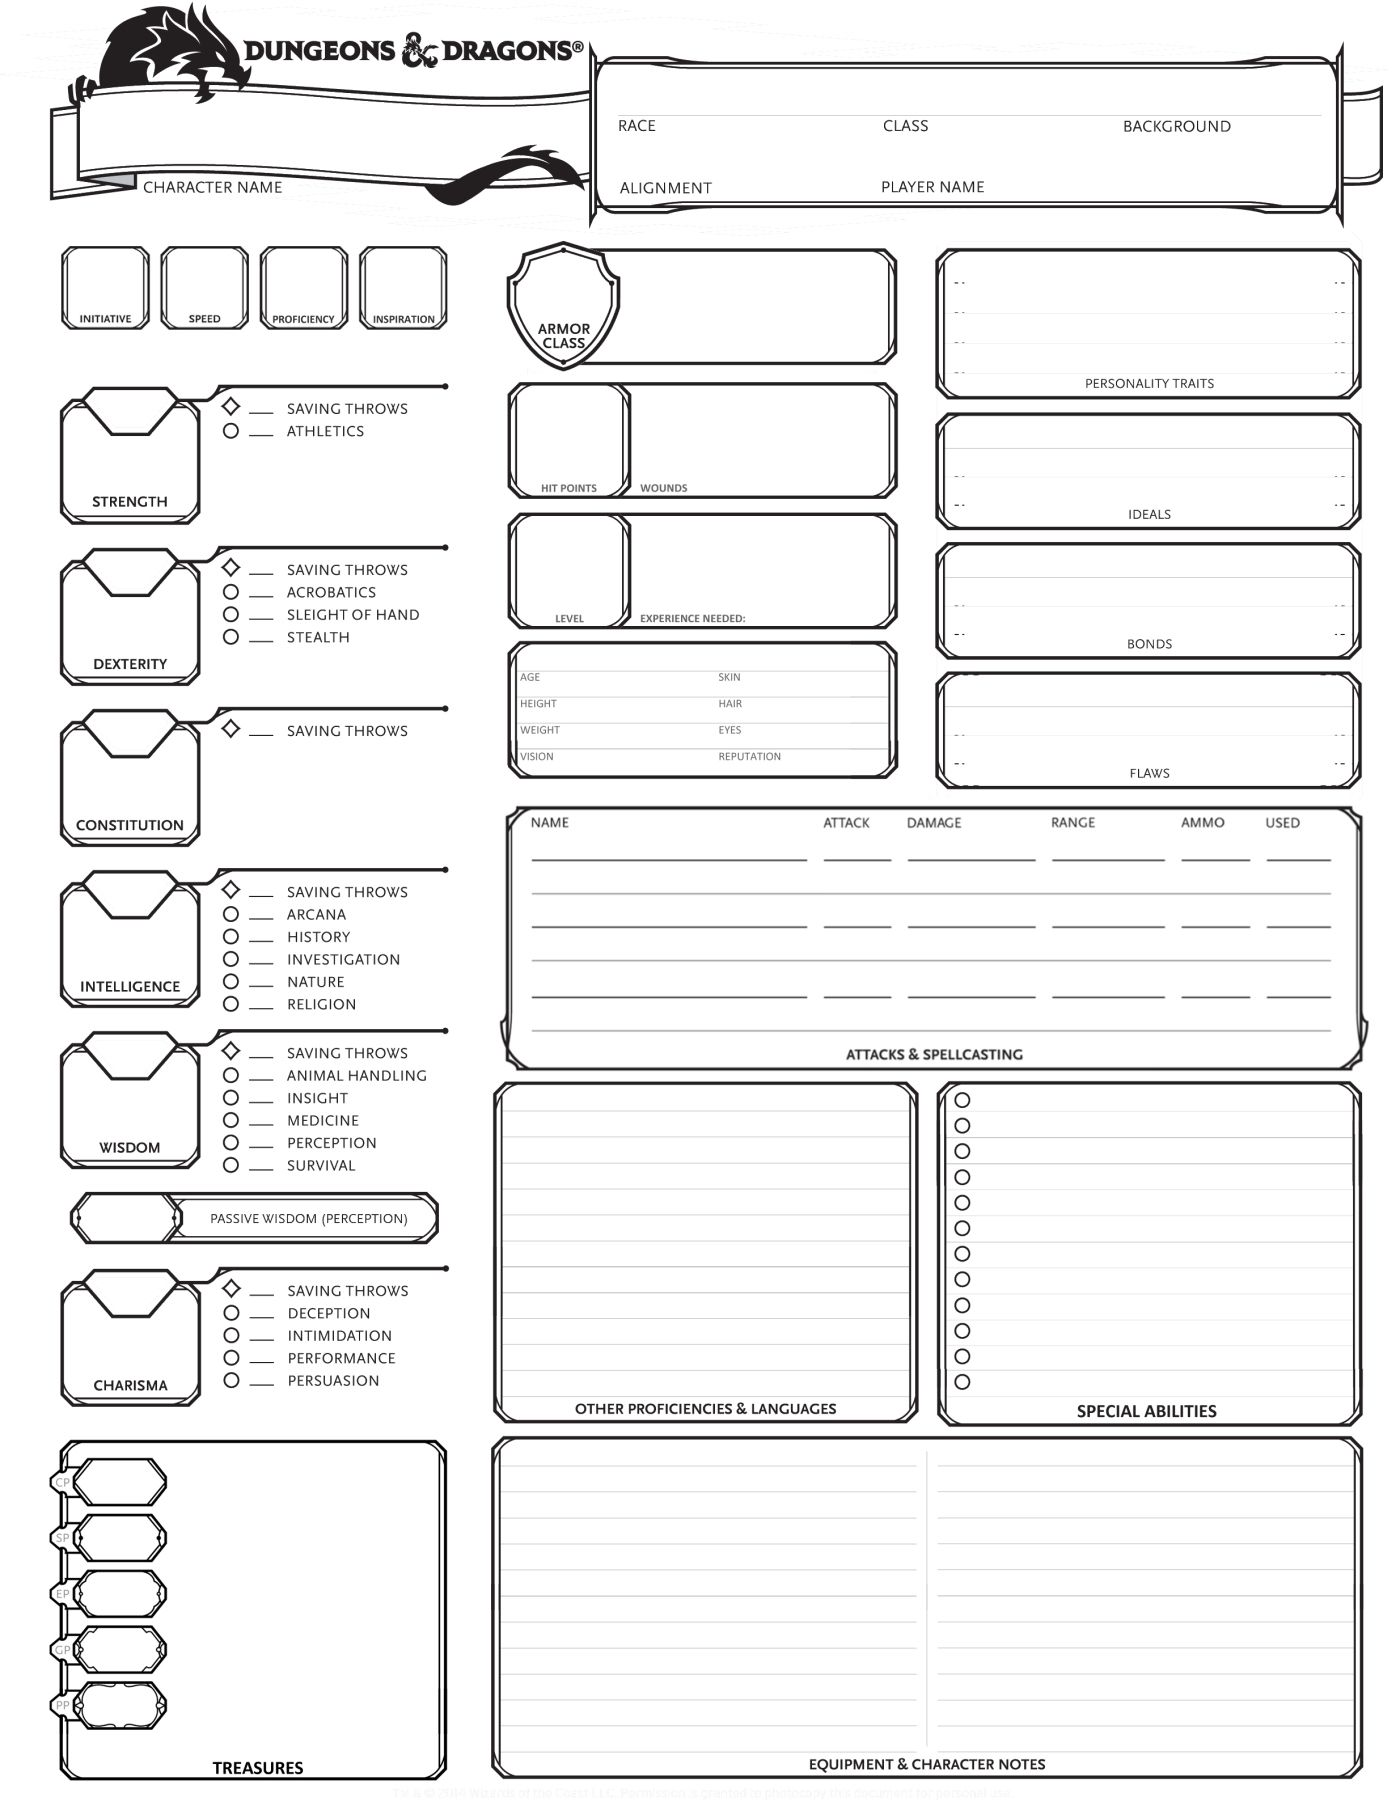 photograph relating to 5e Character Sheet Printable named Dungeons Dragons 5th Model Persona Sheet Dungeon